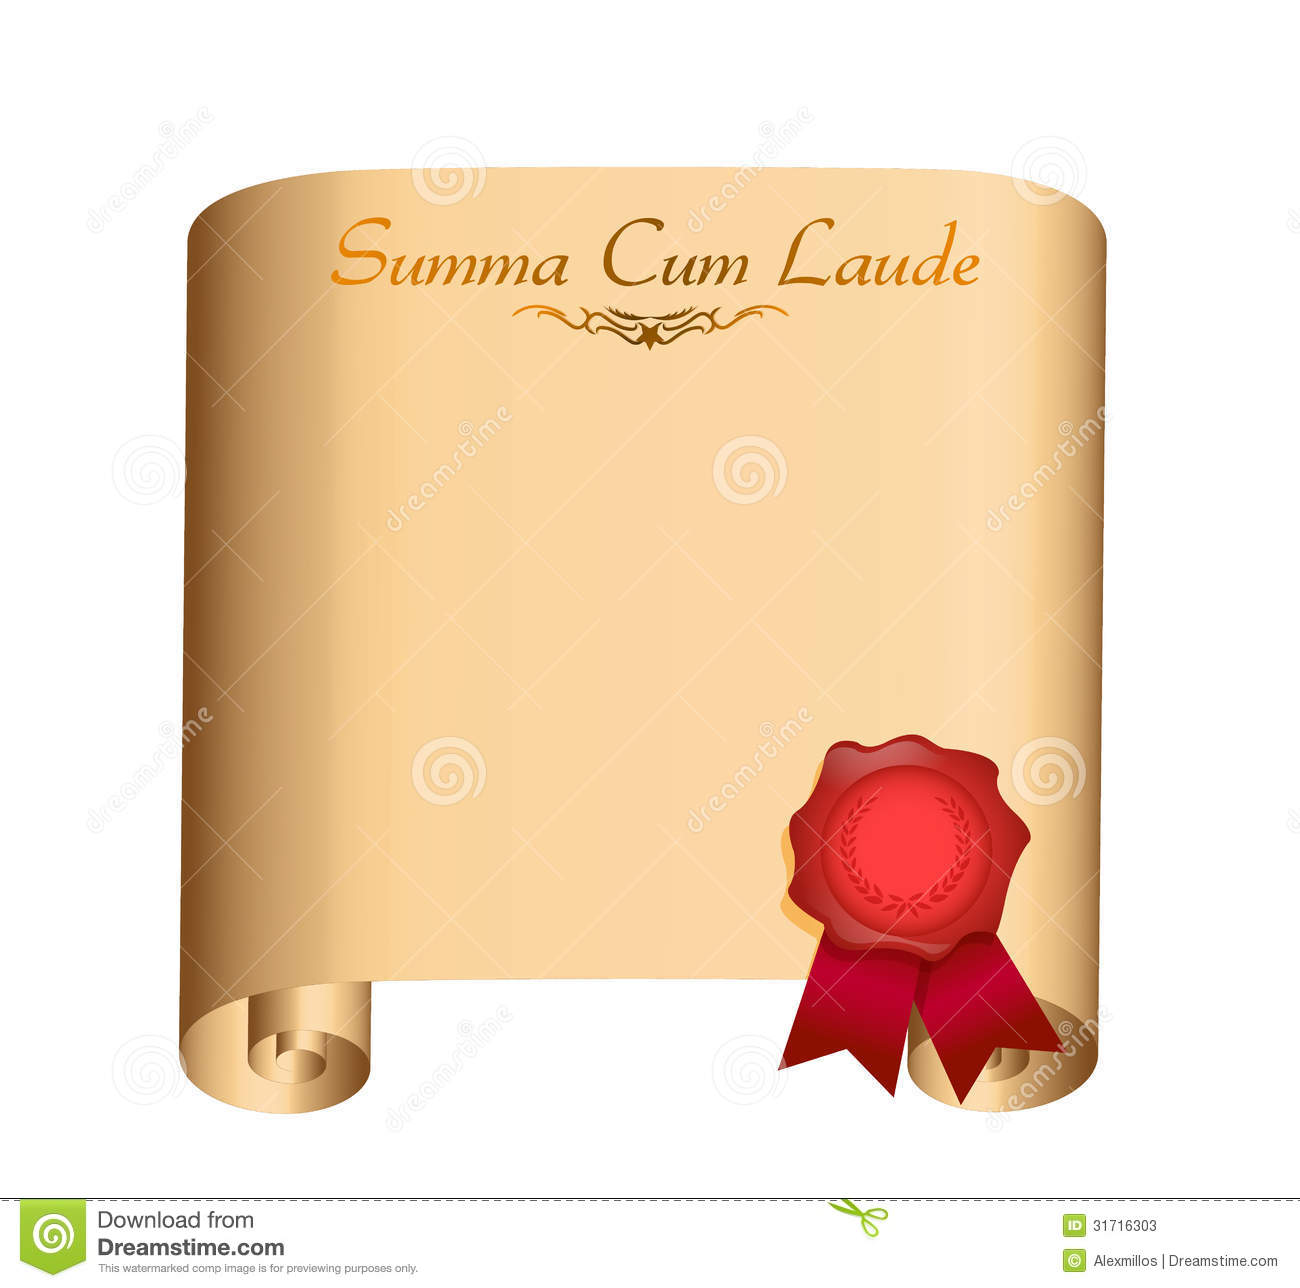 Summa Laude College Graduation Diploma Stock Photos